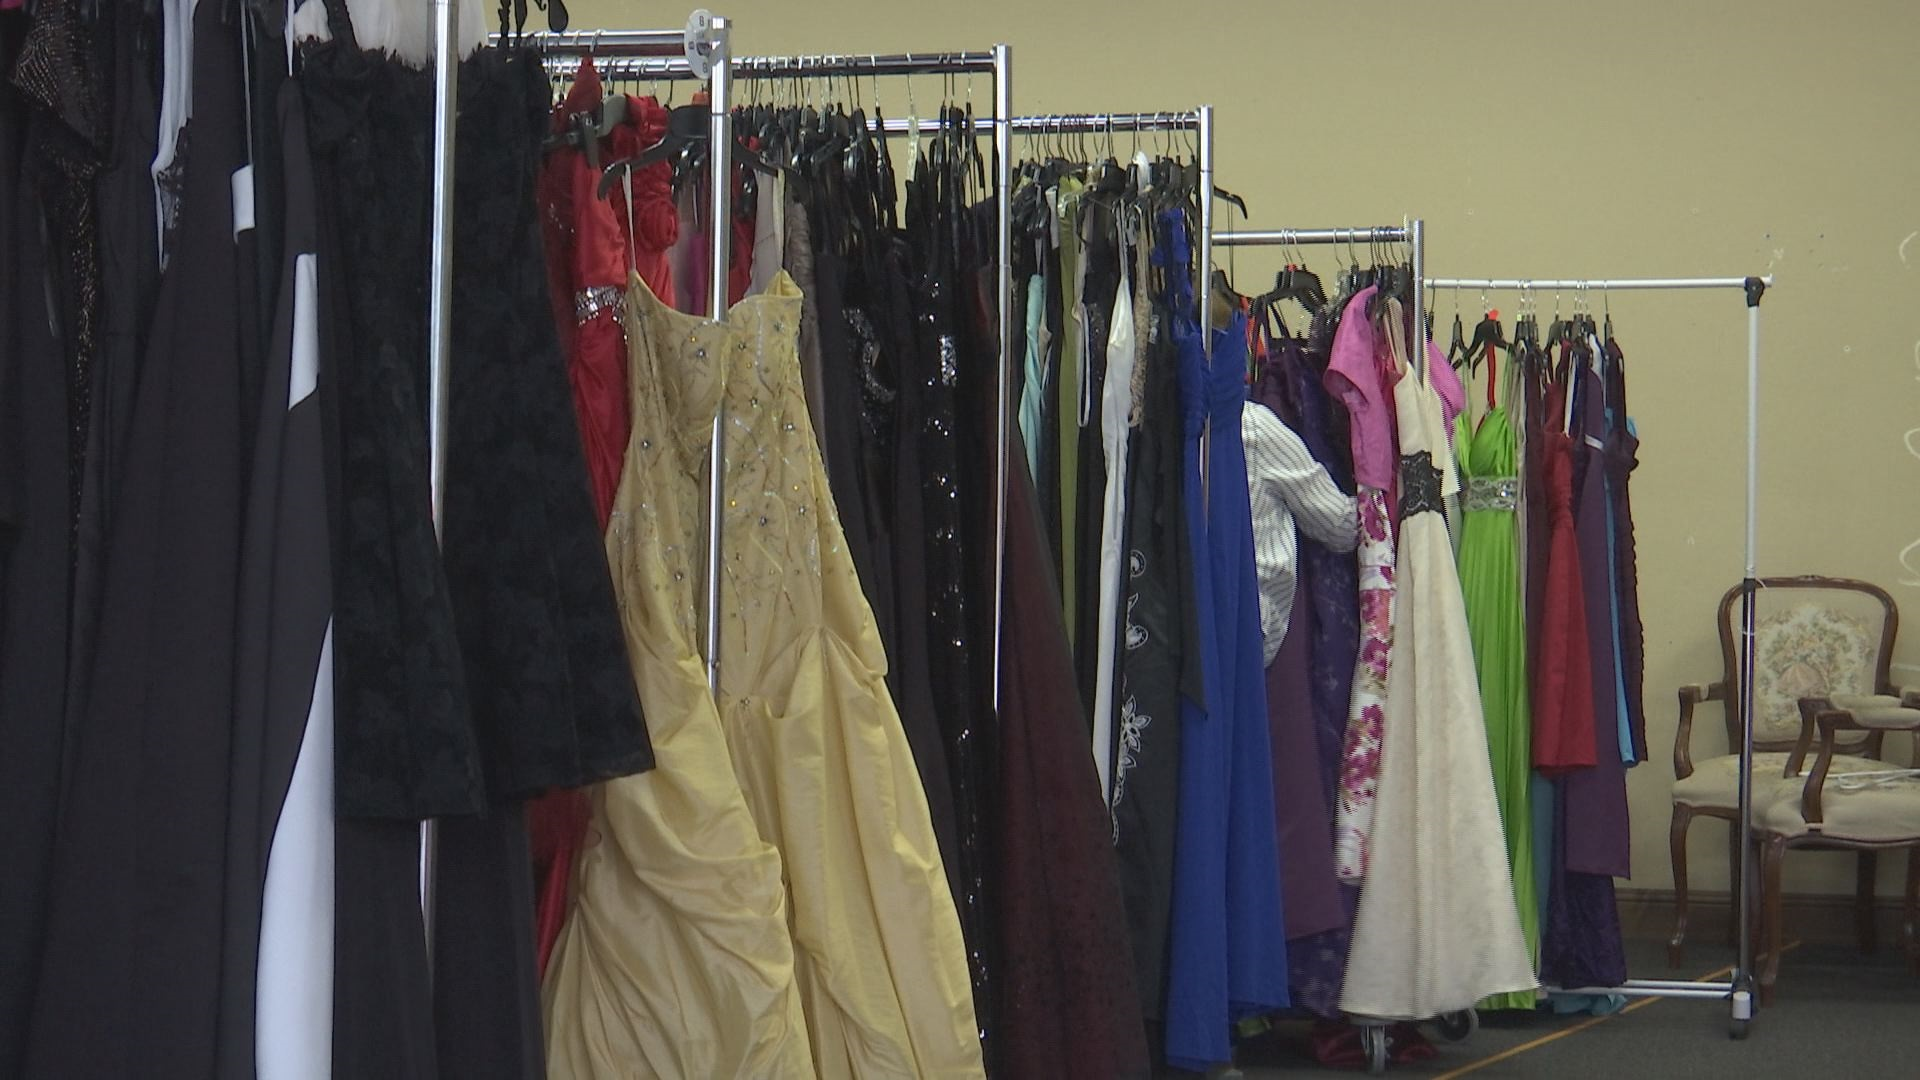 8d6d64bcf93 A local organization is giving out hundreds of free prom dresses this  weekend to local high school students.